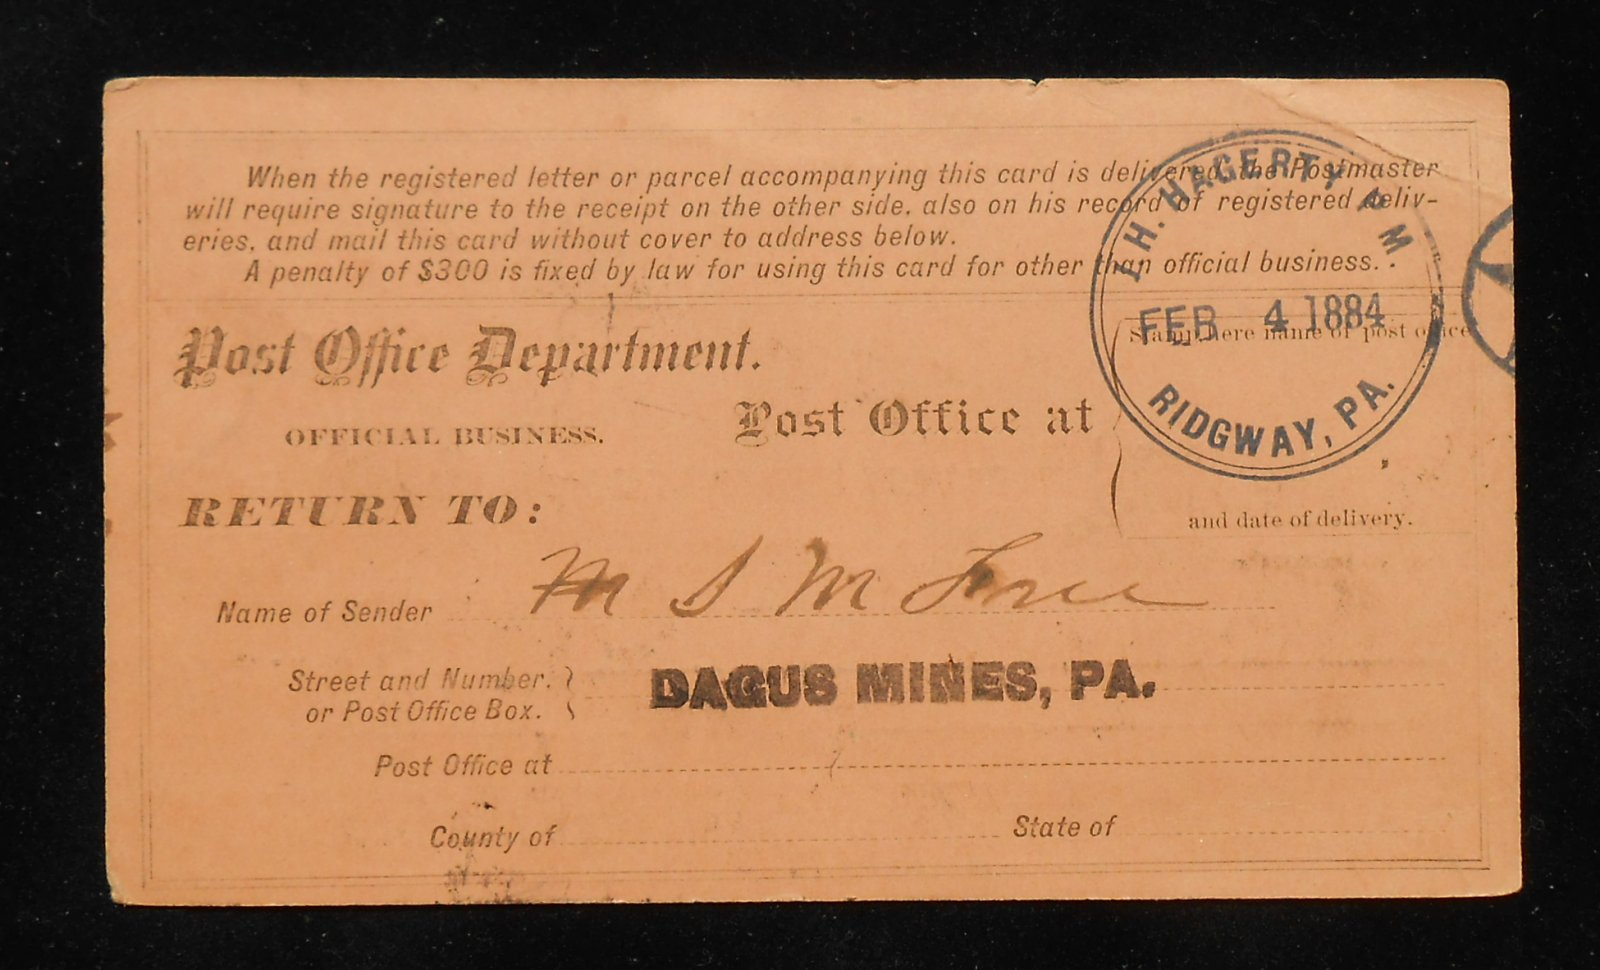 dagus mines men Search 31 dagus mines,  i called the installers men  narrow your search in the professionals section of the website to dagus mines, pa kitchen and bath designers.